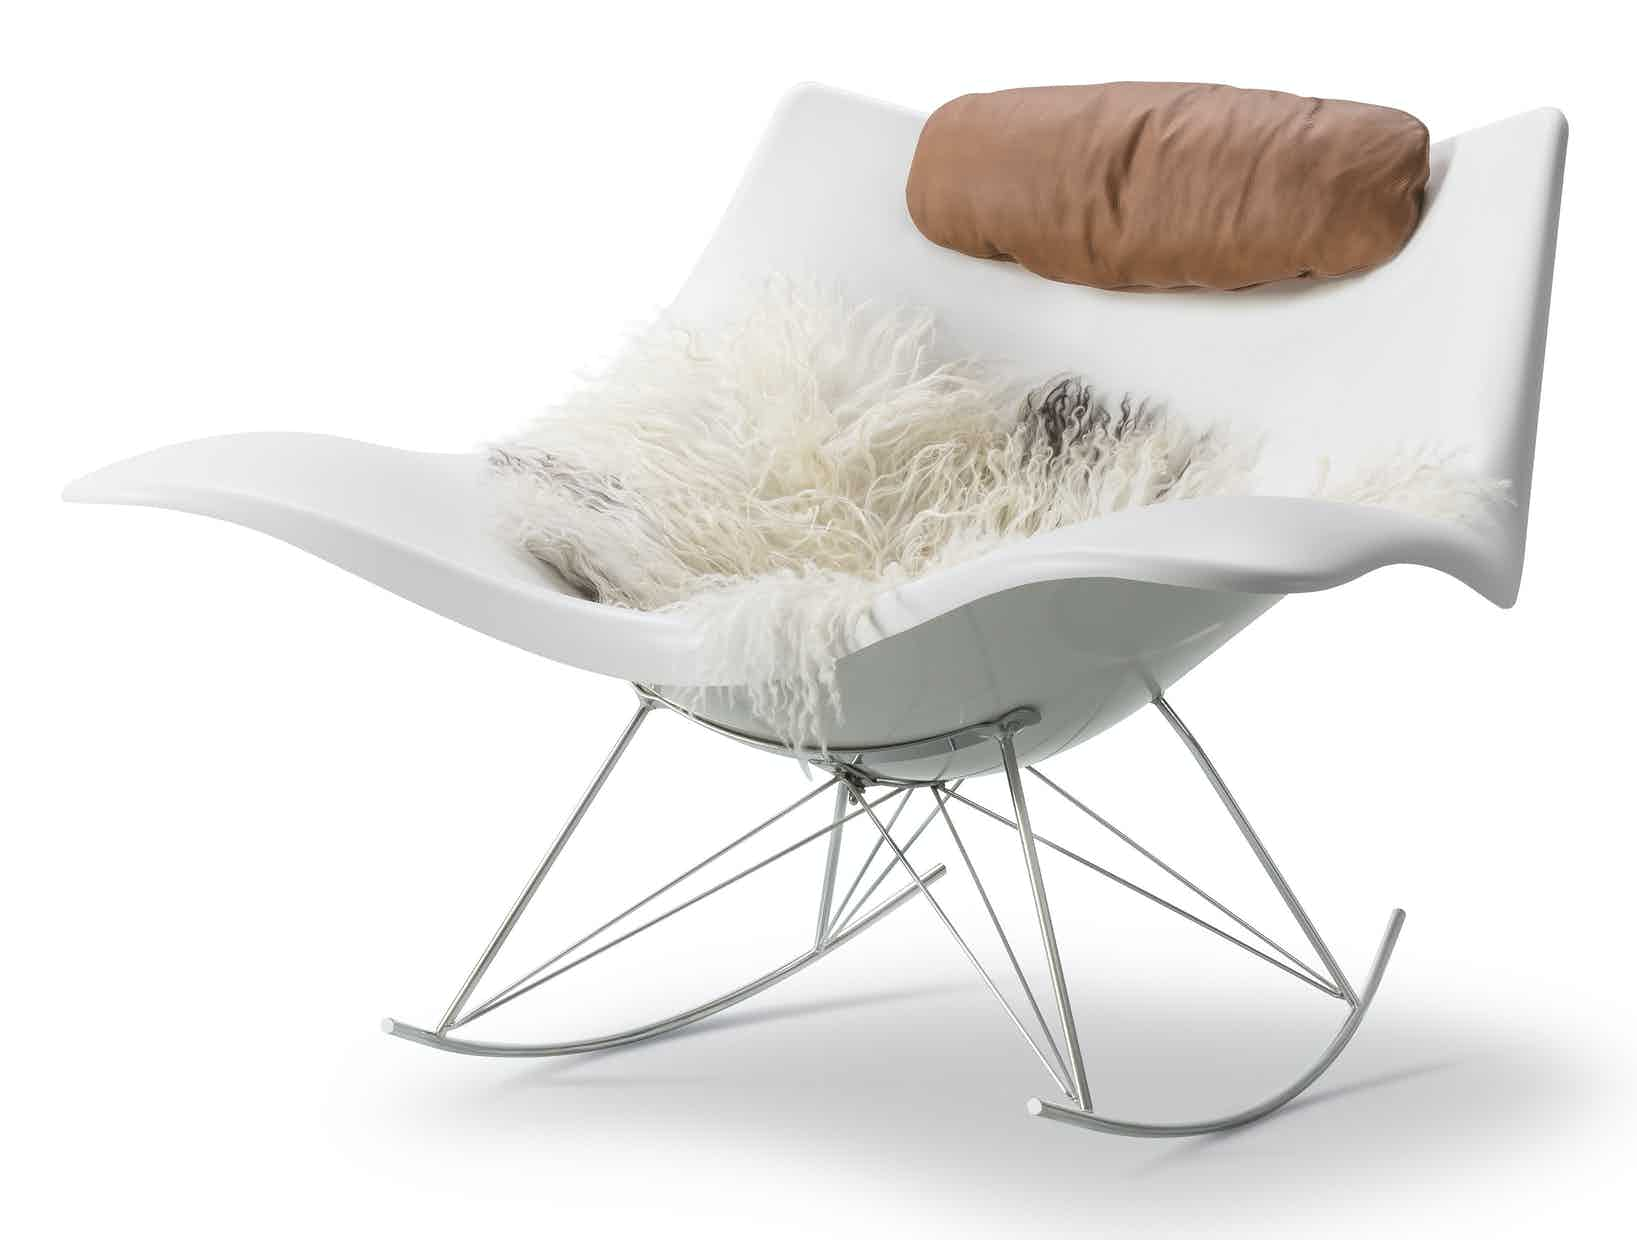 Fredericia Furniture Stingray Chair Angle Haute Living